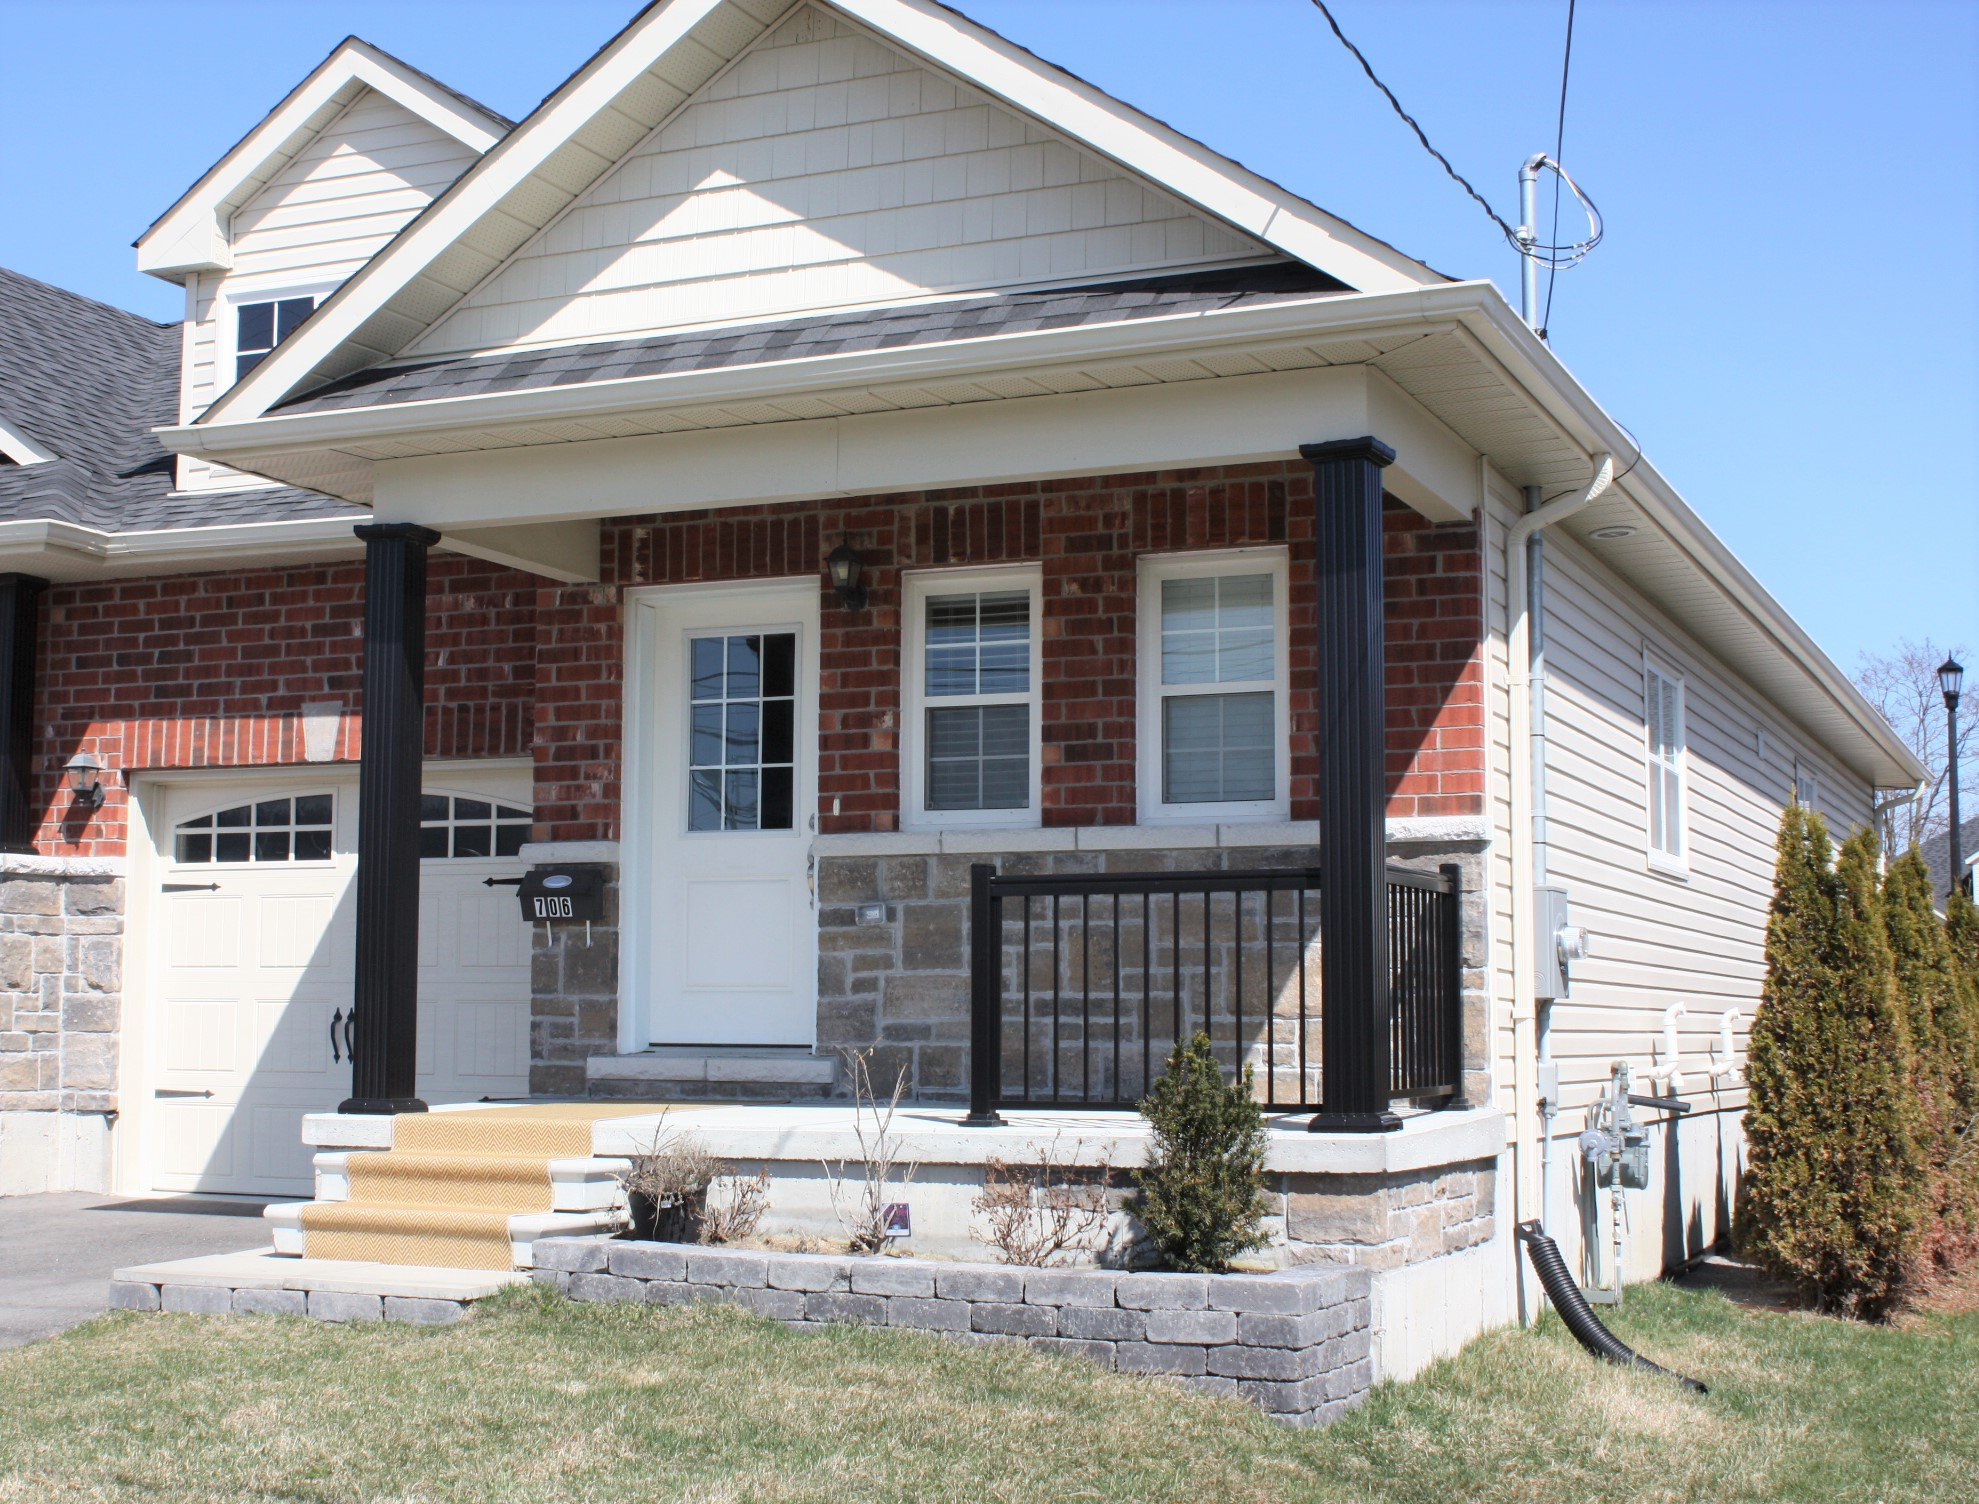 Photo 21: Photos: 706 Ontario Street in Cobourg: Residential Attached for sale : MLS®# 254262